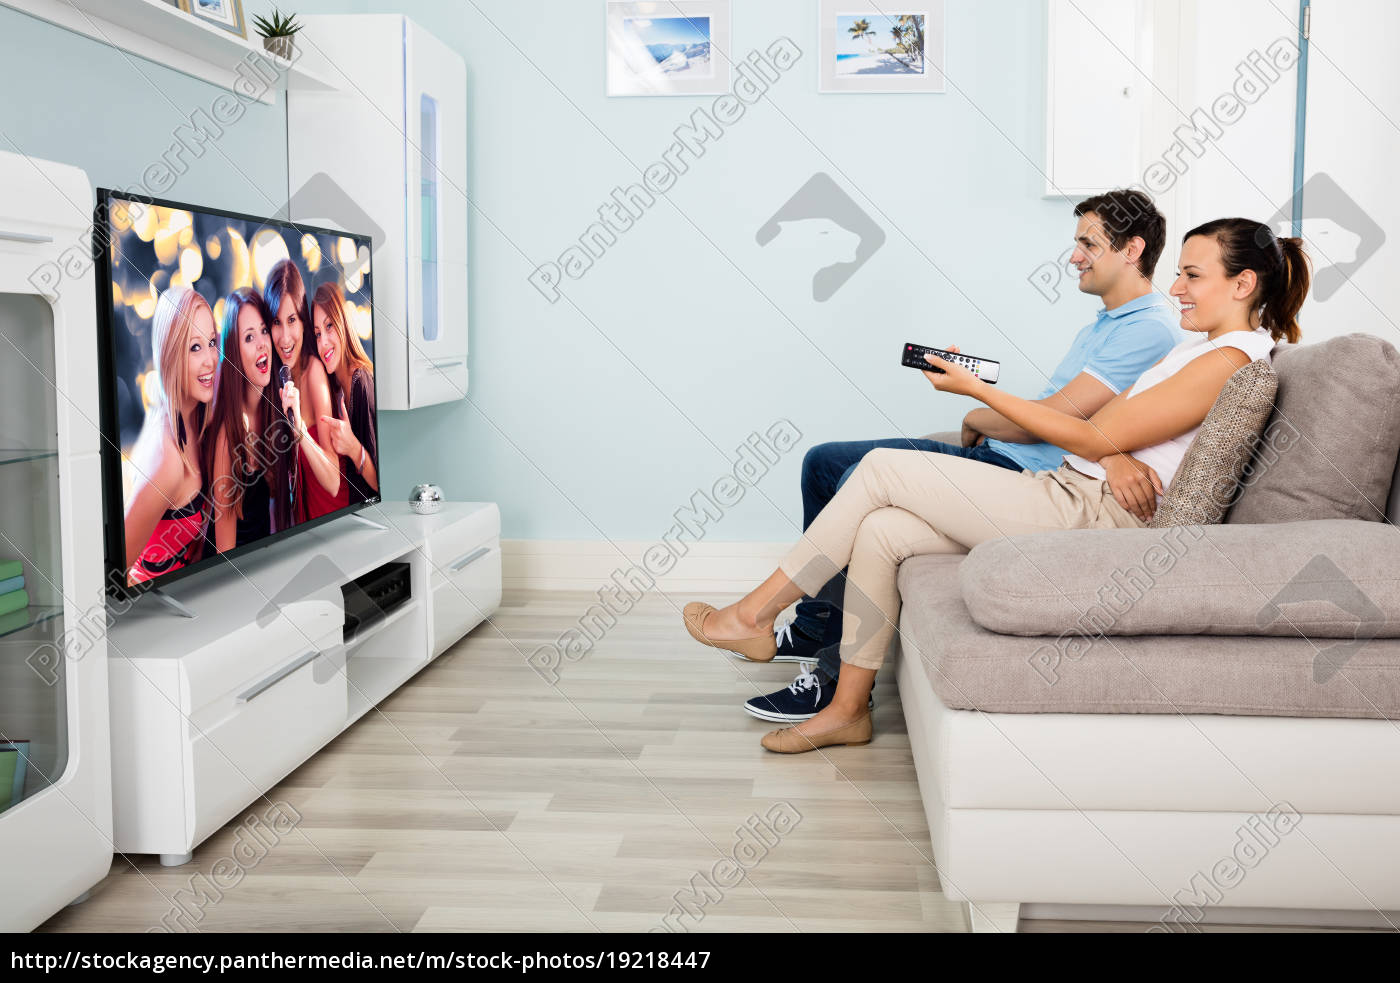 couple, sitting, on, sofa, watching, television - 19218447